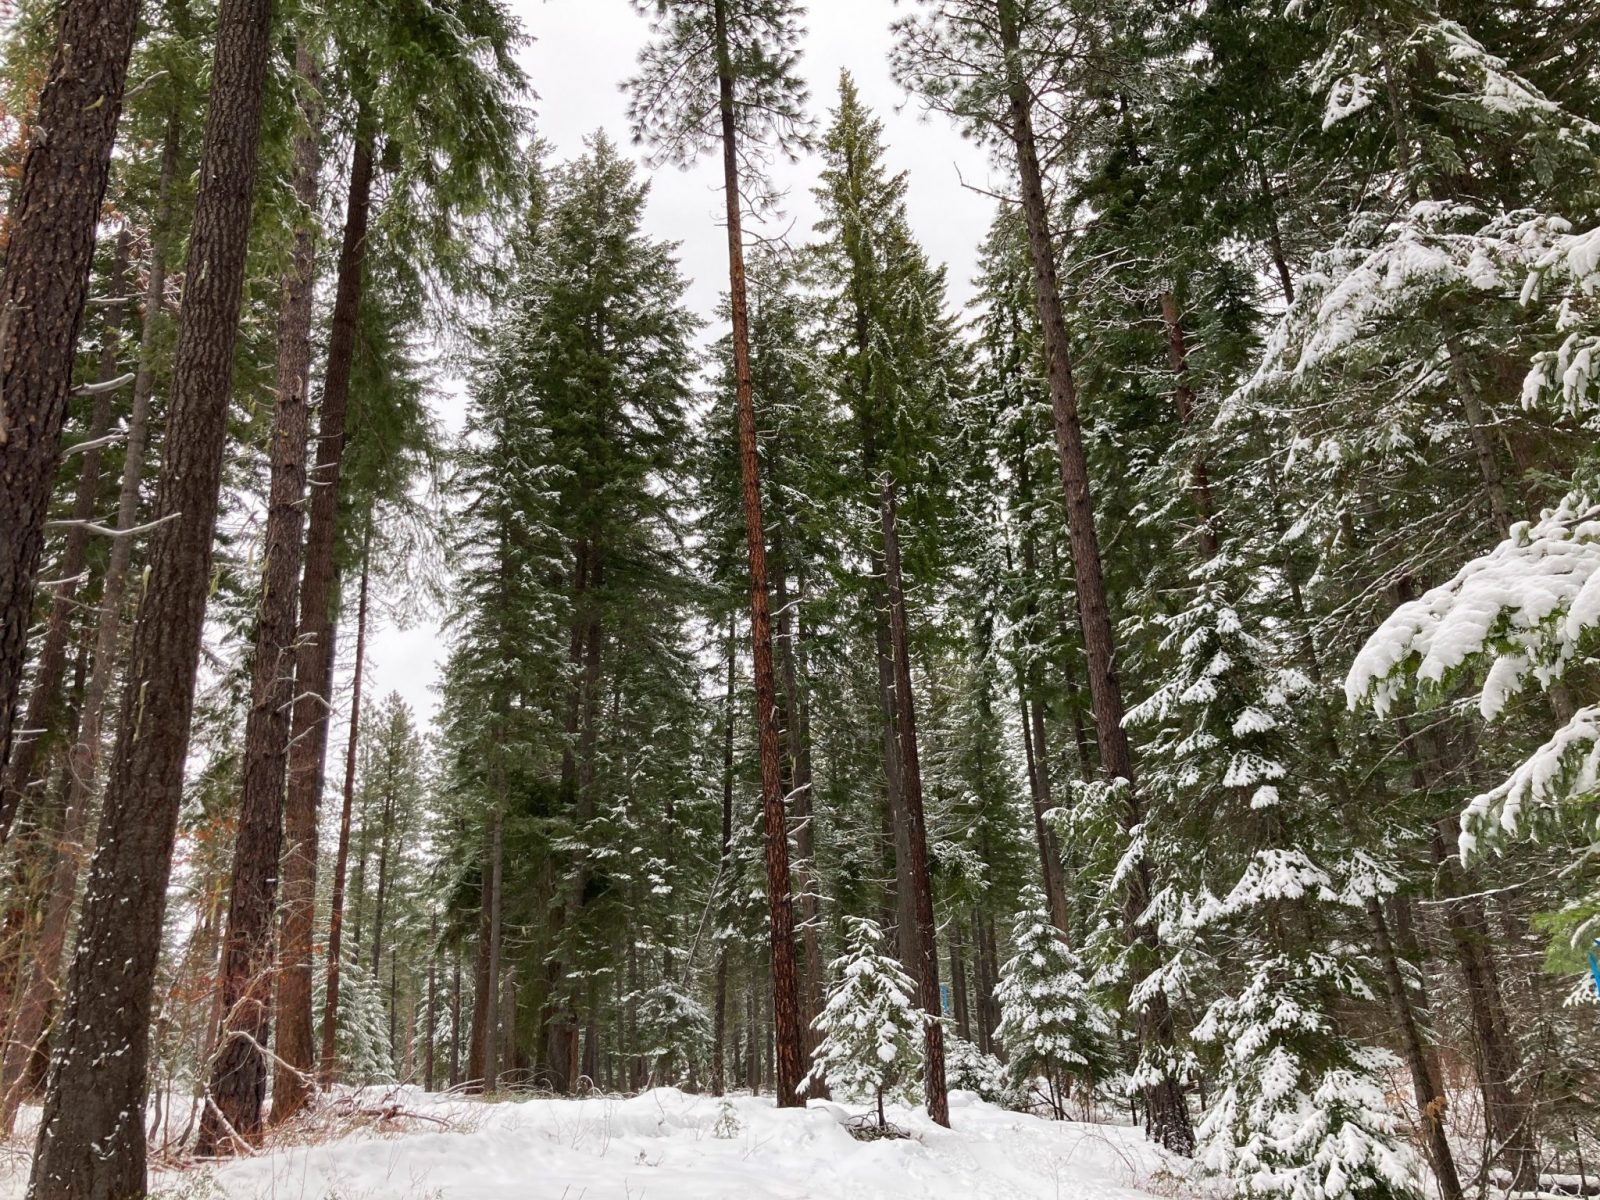 A snowy forest of tall pine trees